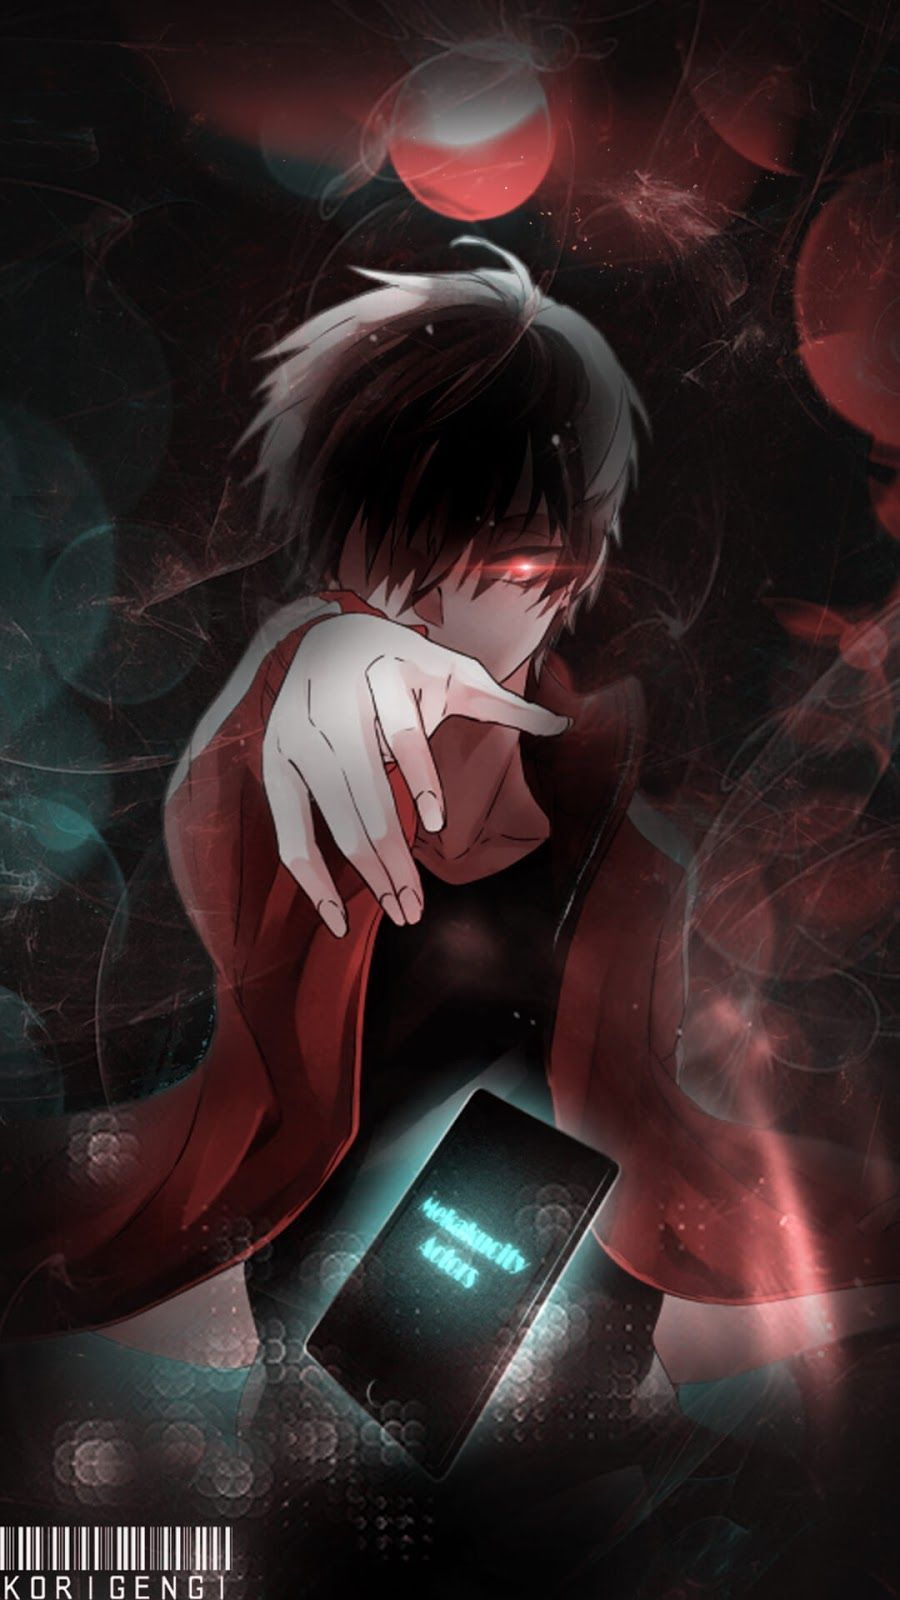 Kisaragi Shintaro In 2020 Evil Anime Anime Drawings Boy Handsome Anime